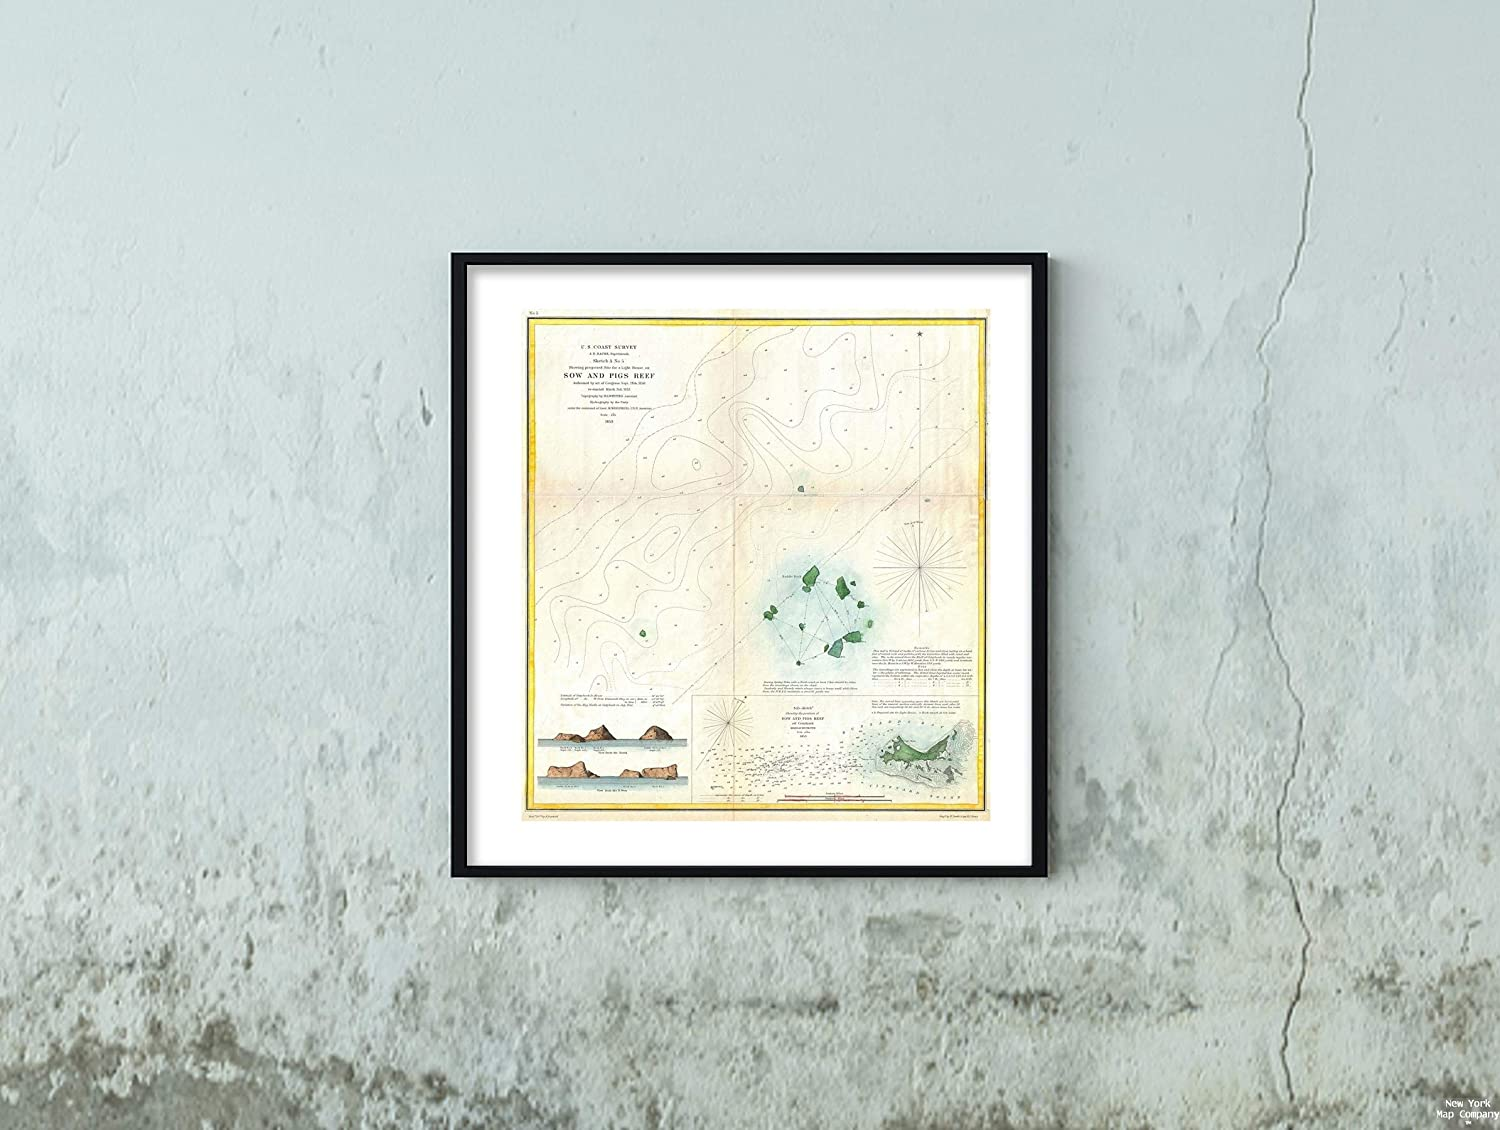 Map|1853 U.S. Coast Survey or Chart of Sow and Pigs Reef Off Marthas Vineyard, Massachussetts -|Vintage Fine Art Reproduction|Size: 22x24|Ready to Frame